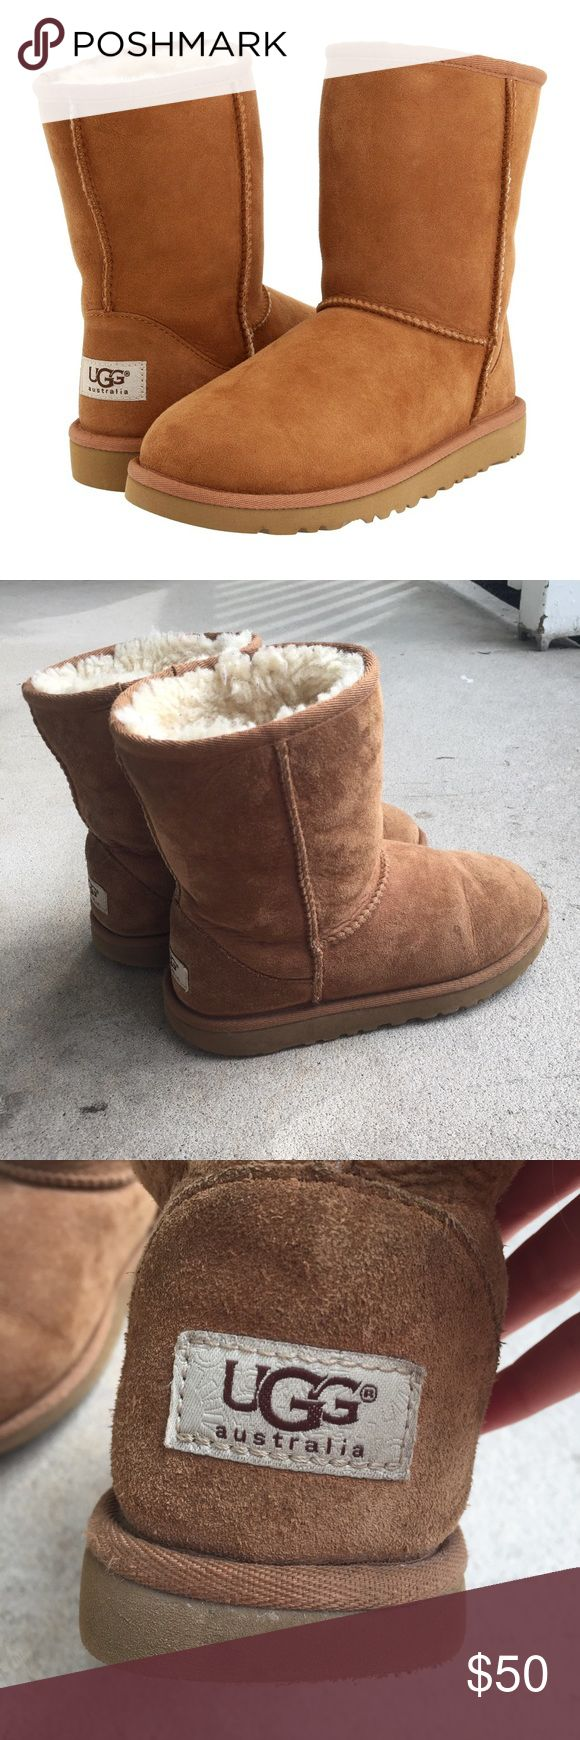 ❗️SALE ❗️Chestnut Uggs THESE WILL FIT IF YOU ARE A WOMEN'S 5!!!! Kids chesnut uggs that are used but grown out of. They are in good condition with no major problems. The only thing I can see is a bit of wrinkling in front BUT that is fixed when a foot is placed in it 😊 SUPER comfortable and so cute! True to size. A little stain on the front but not noticeable. UGG Shoes Boots